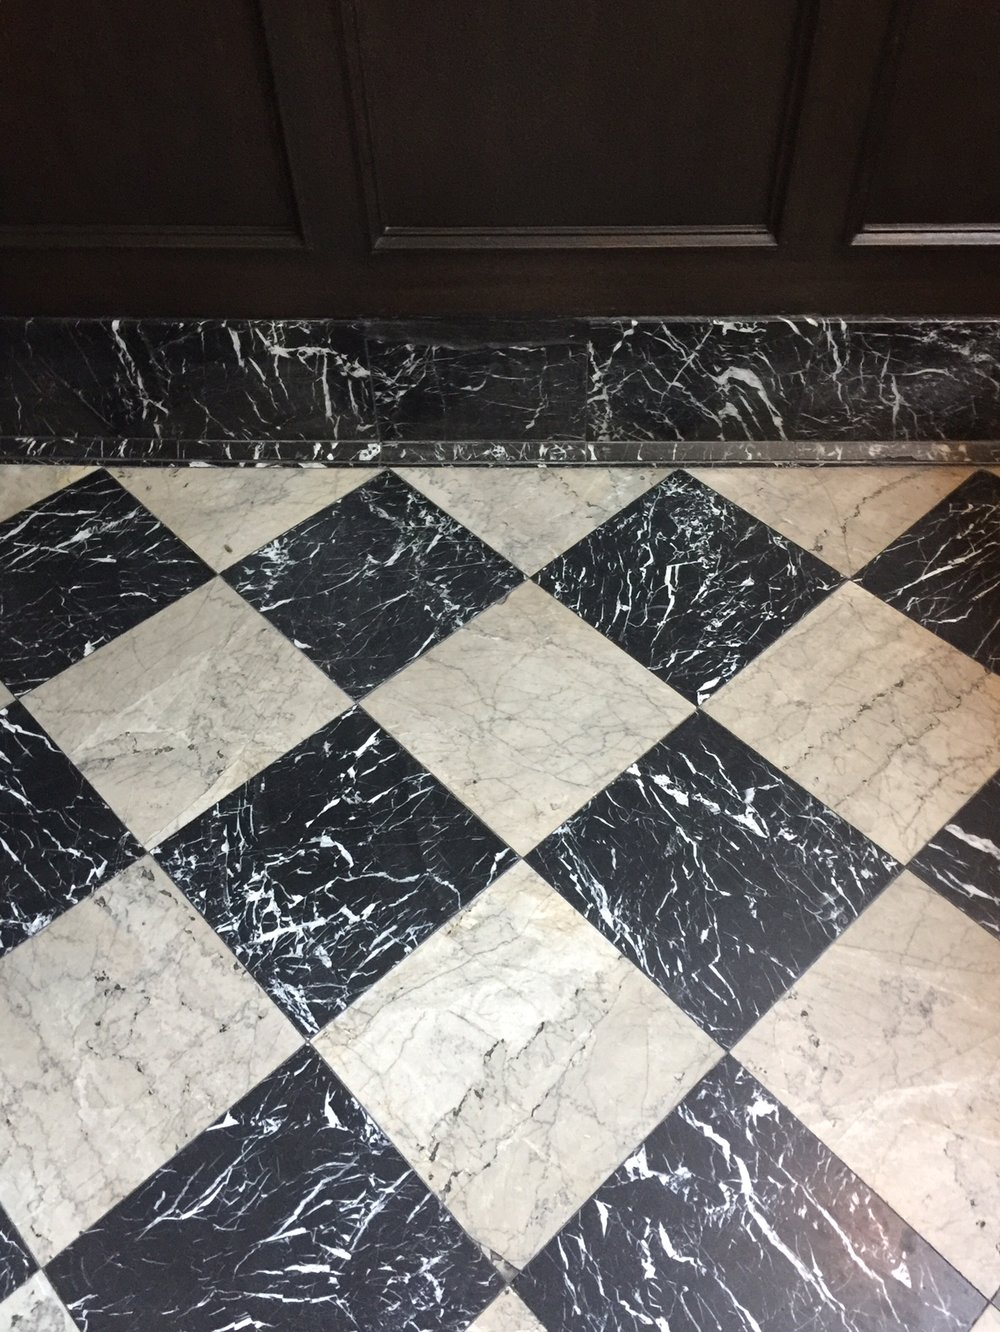 Marble checkerboard tile floors at The Culver Hotel, Los Angeles #marblefloors #checkerboardfloors #marbletilefloors #checkerboardpattern